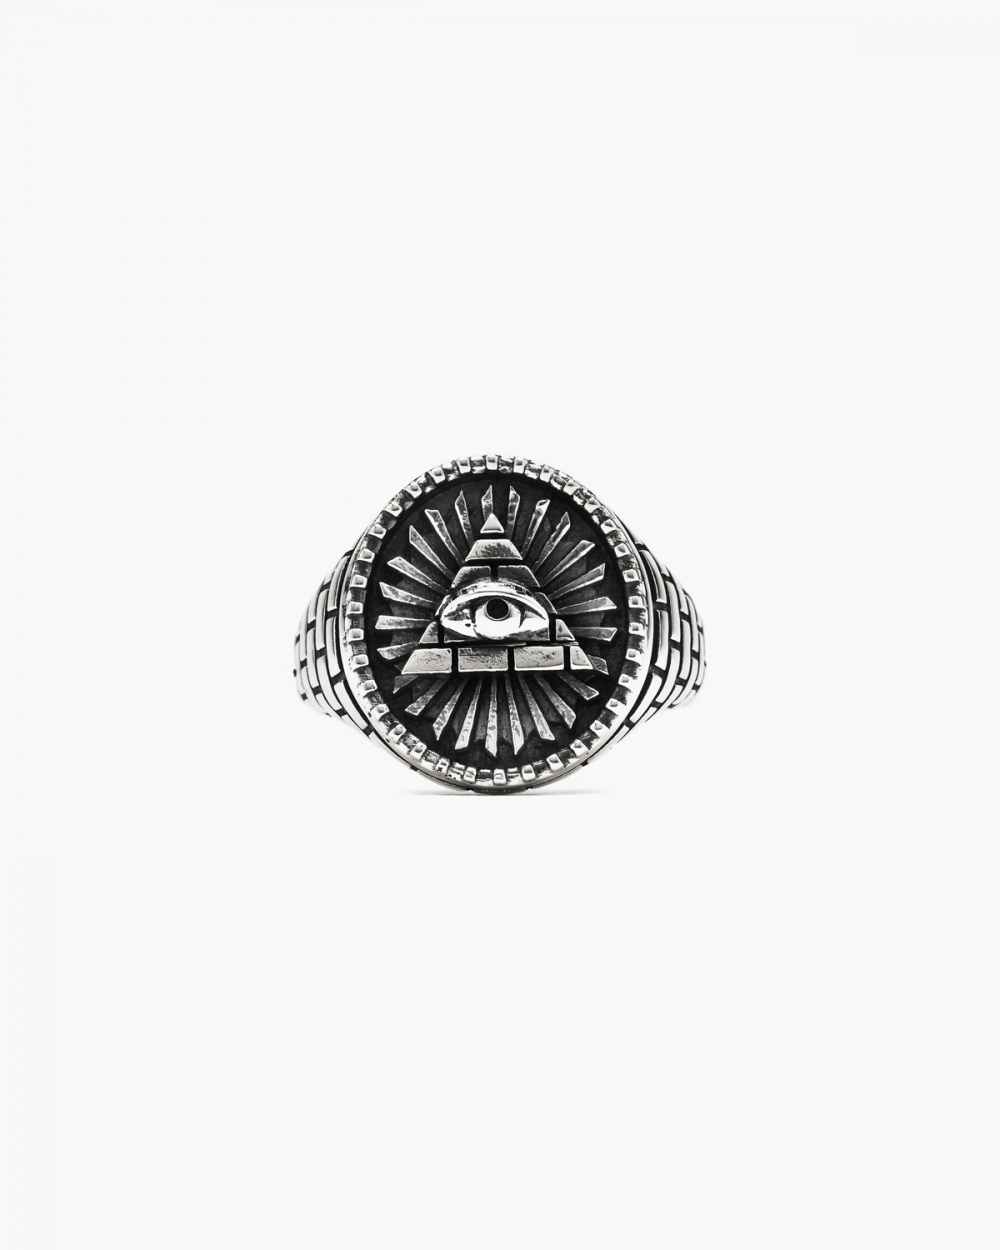 Archive Sale ALL-SEEING EYE SIGNET RING NOVE25